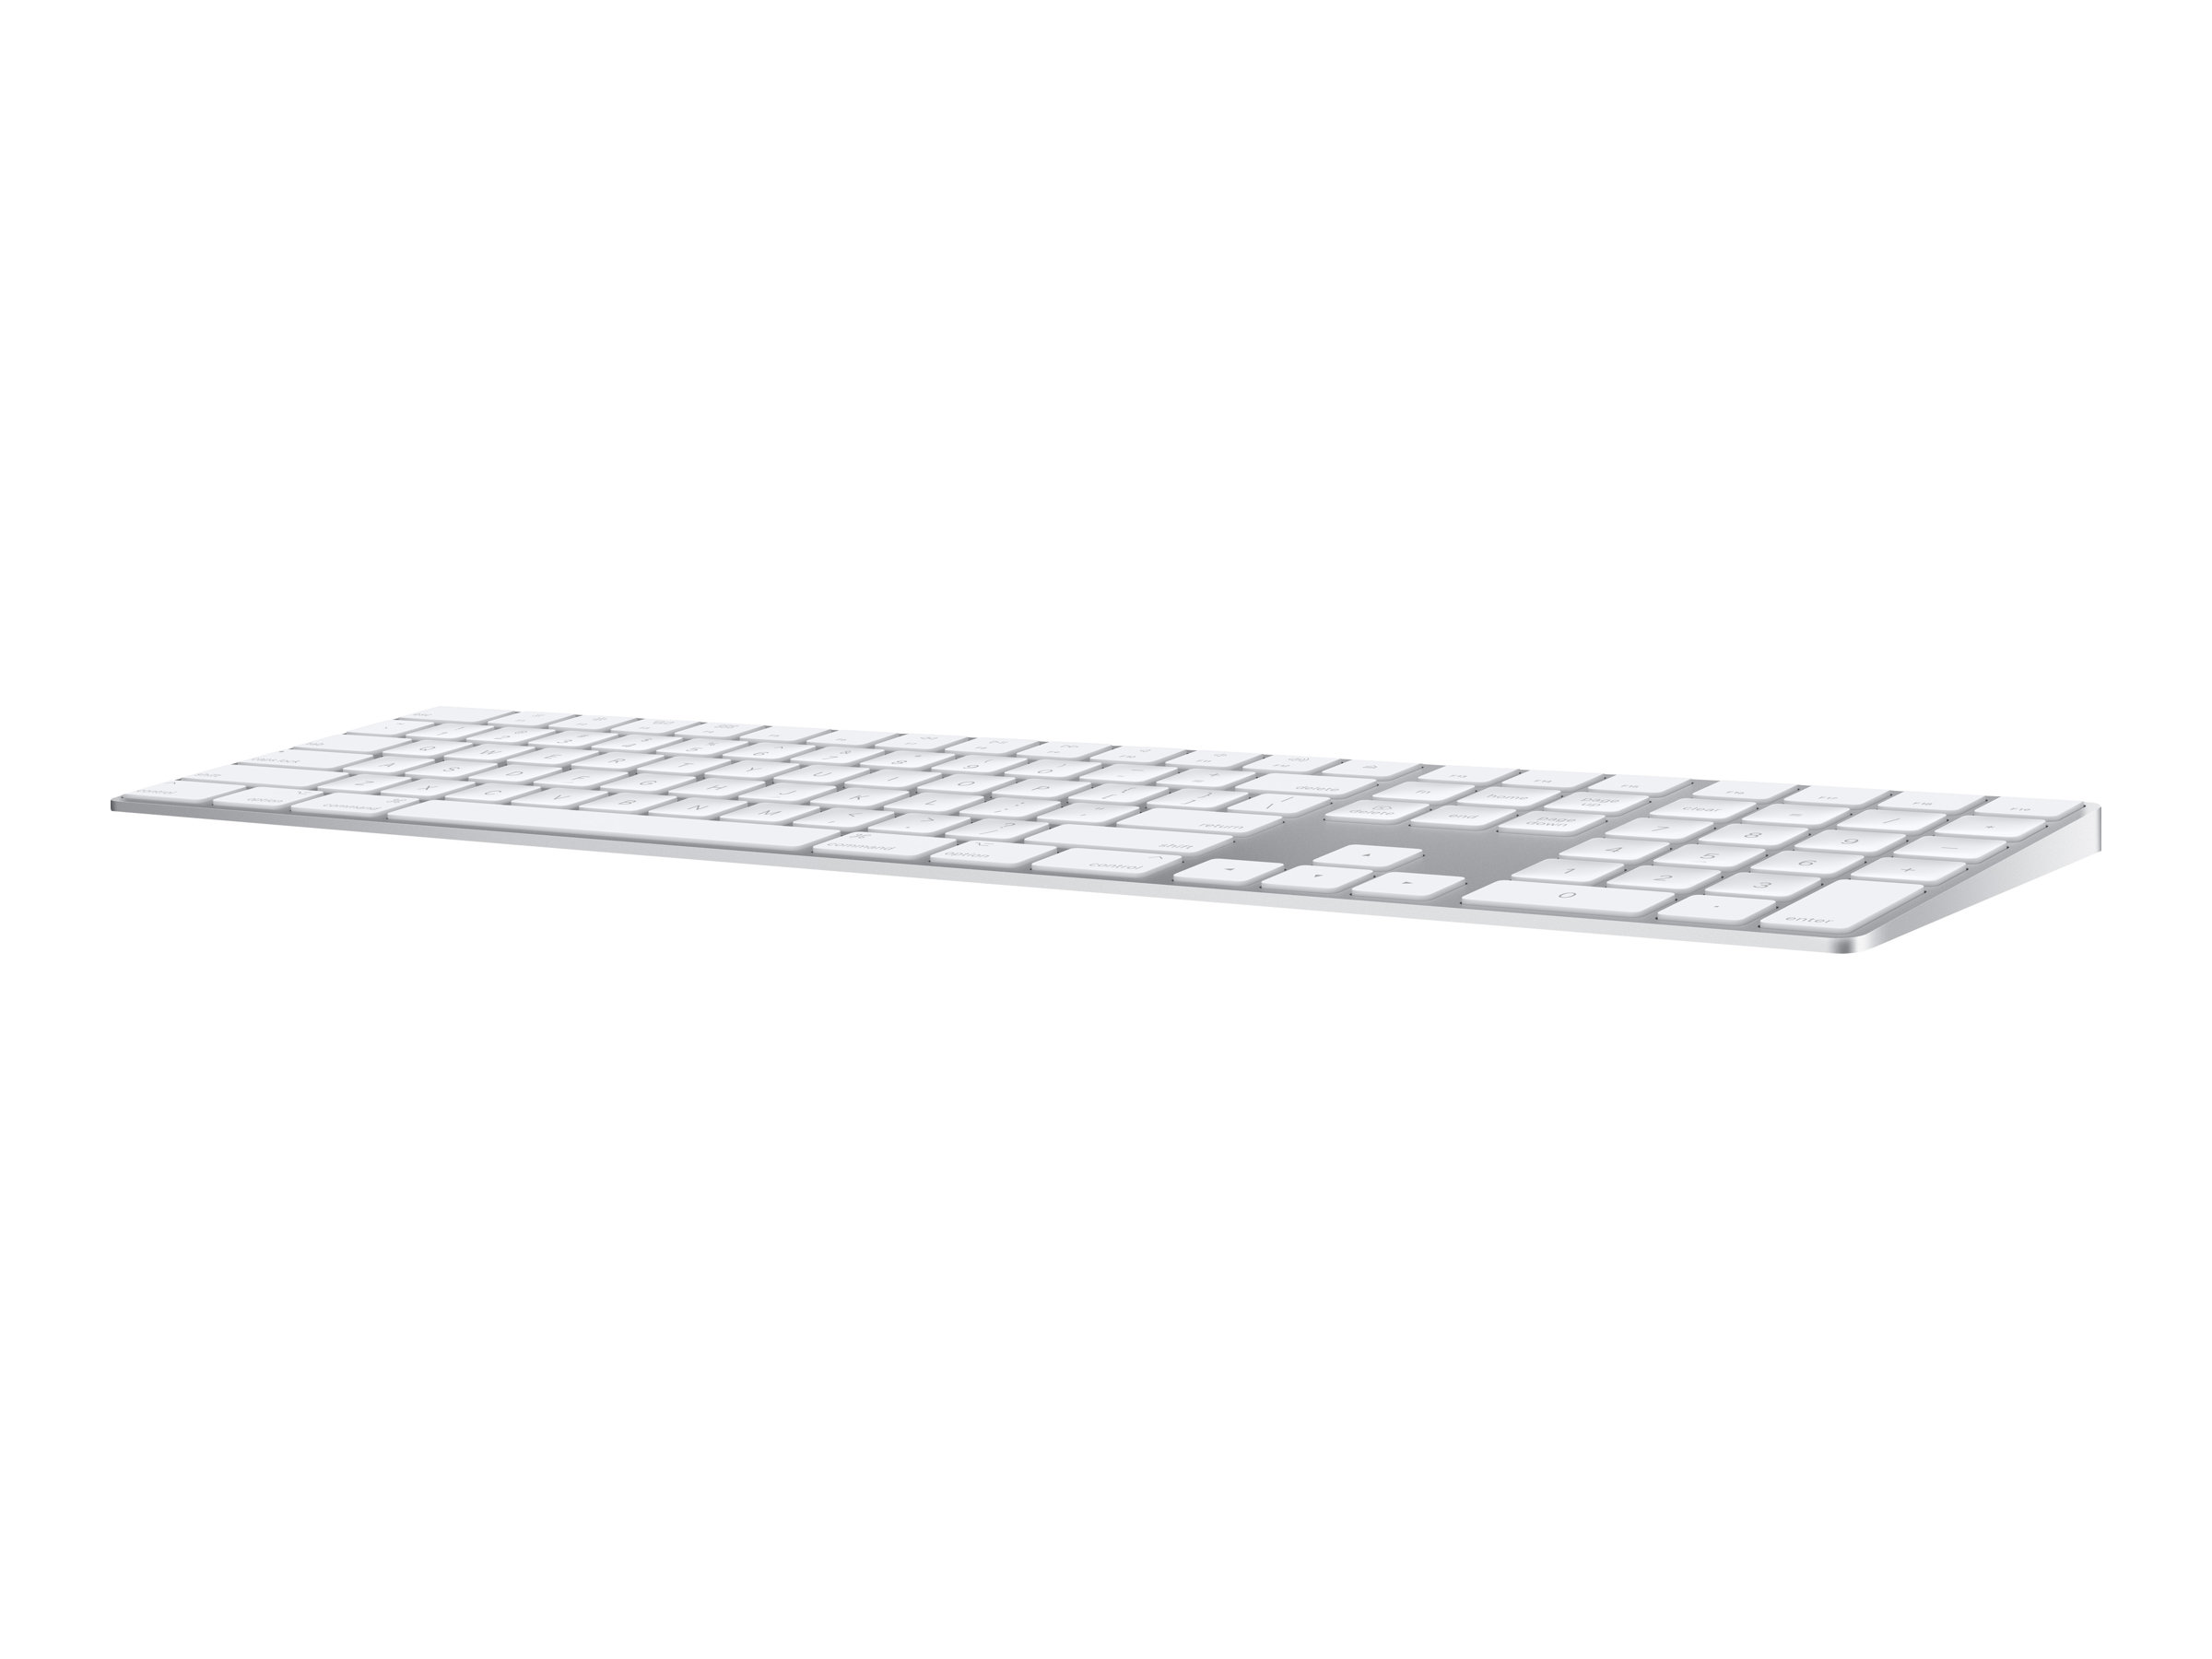 Apple Magic Keyboard with Numeric Keypad - keyboard - QWERTZ - Swiss - silver